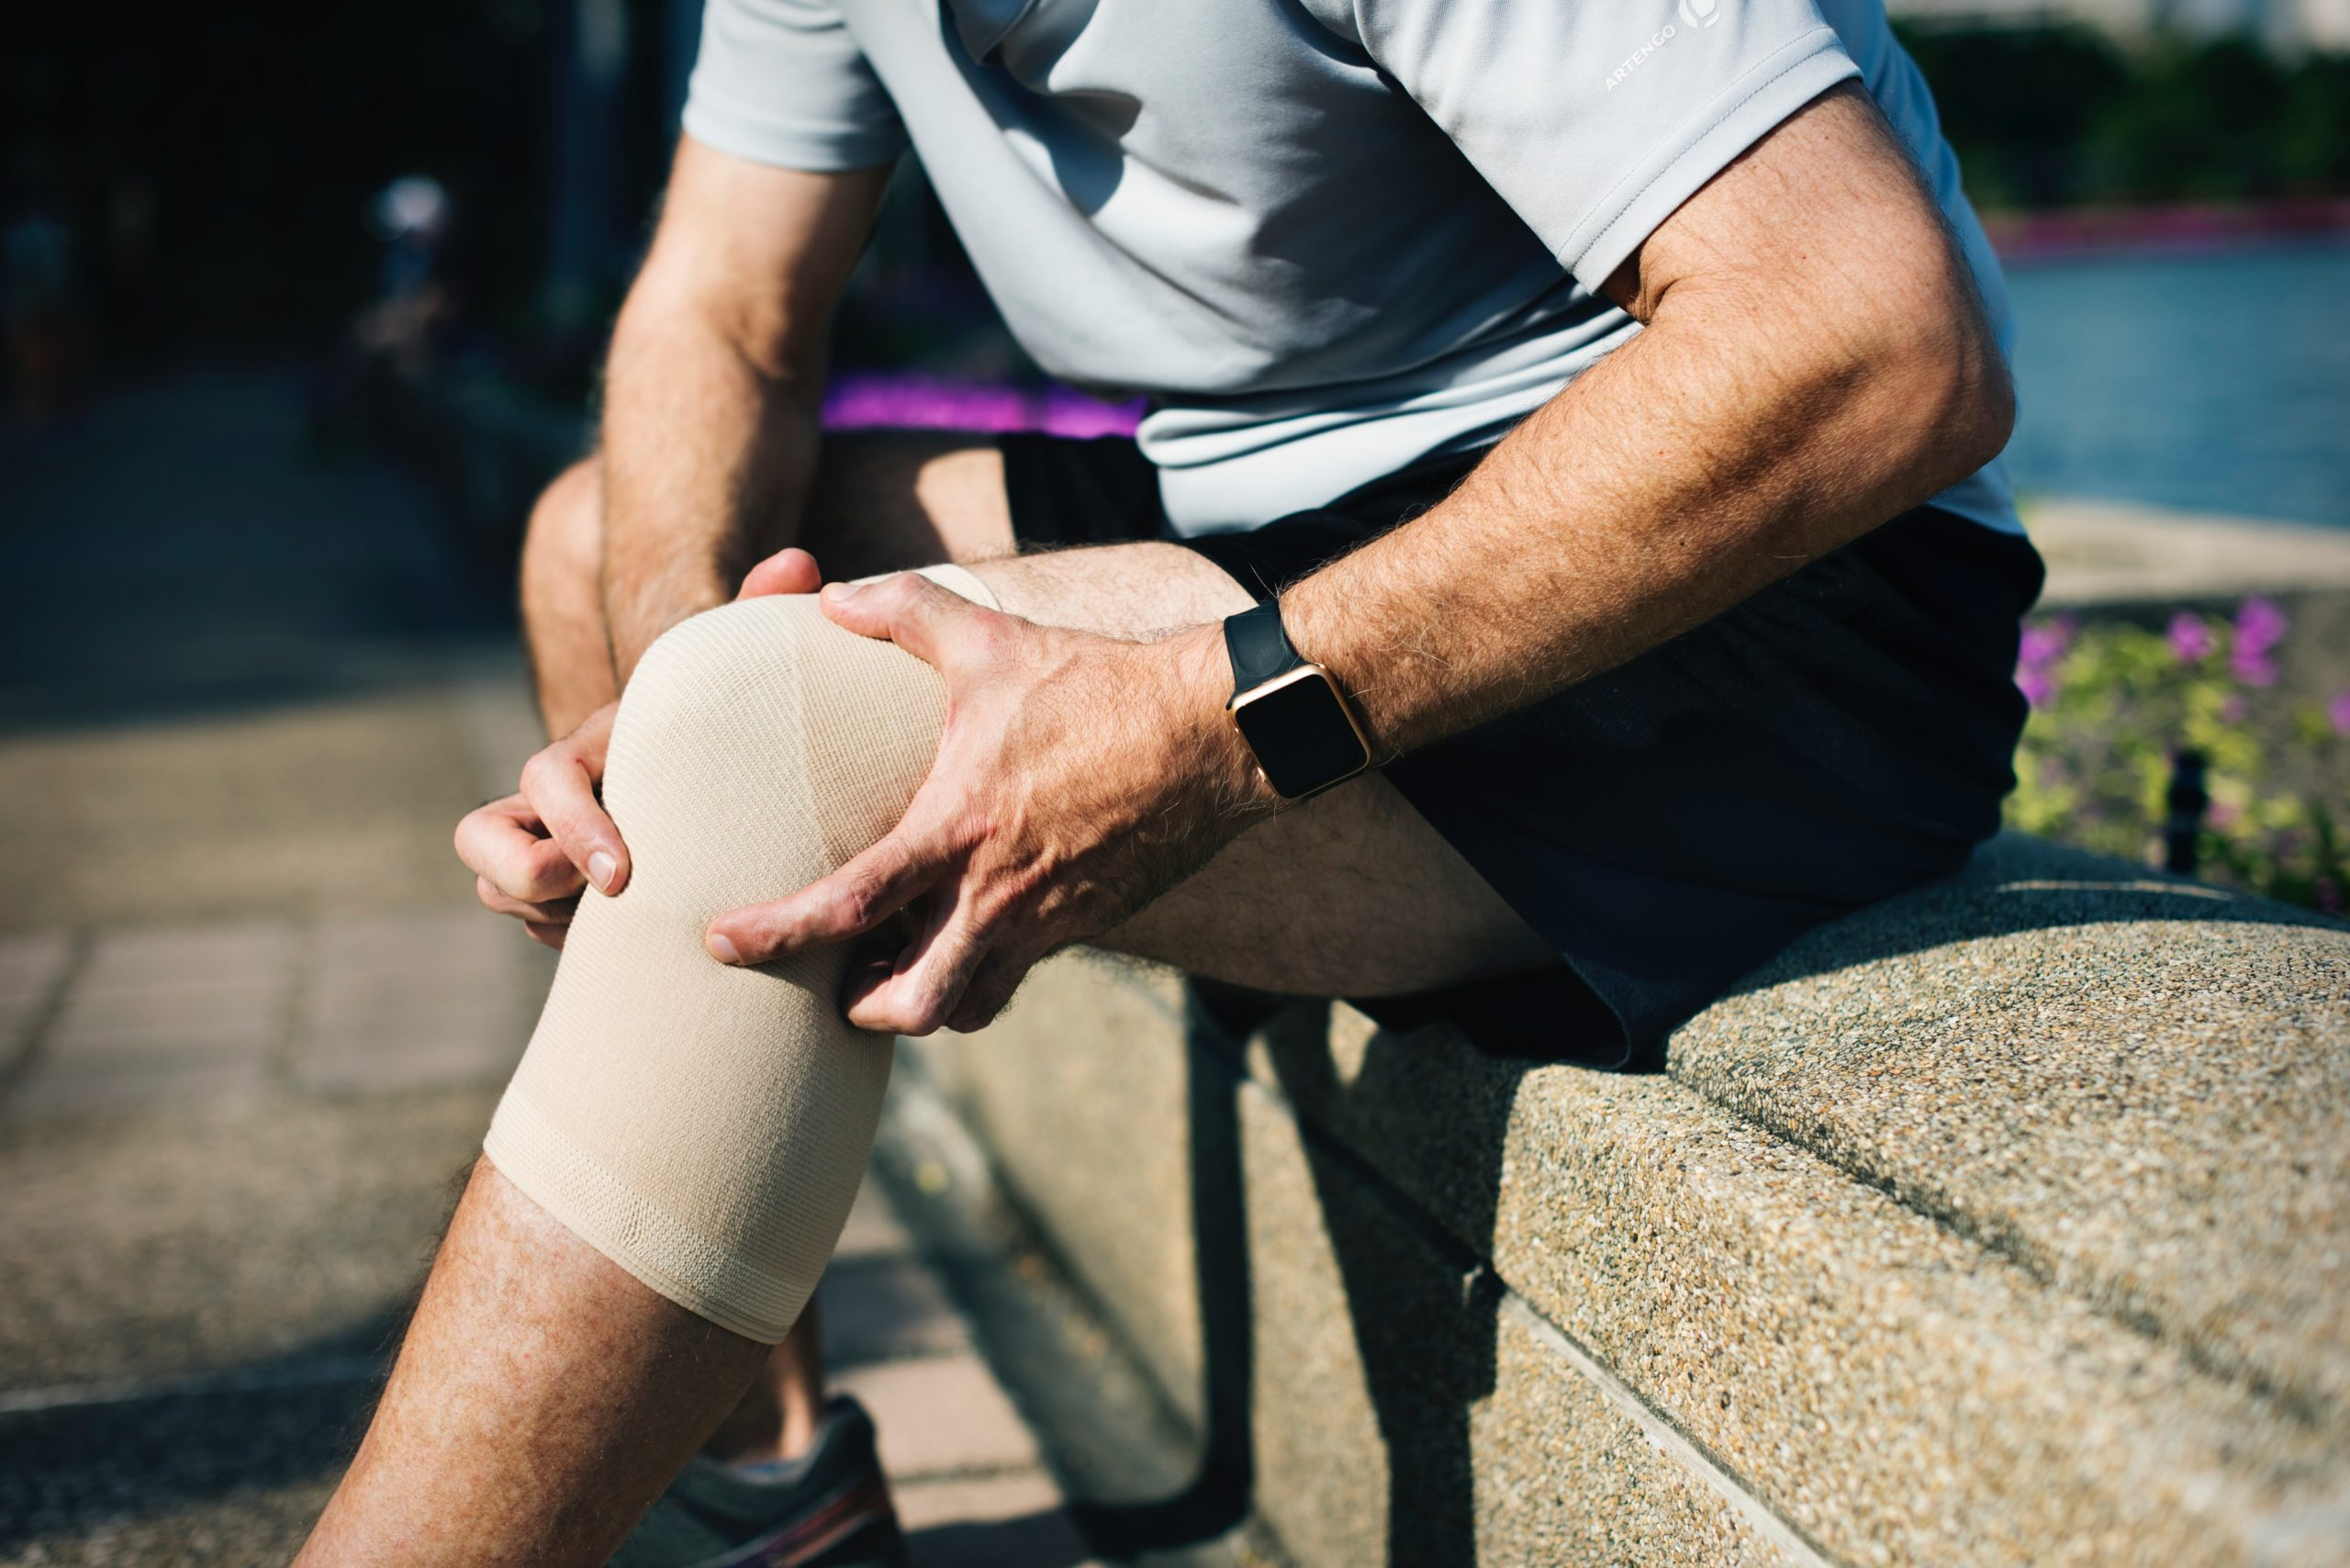 Where To Buy The Best Knee Support